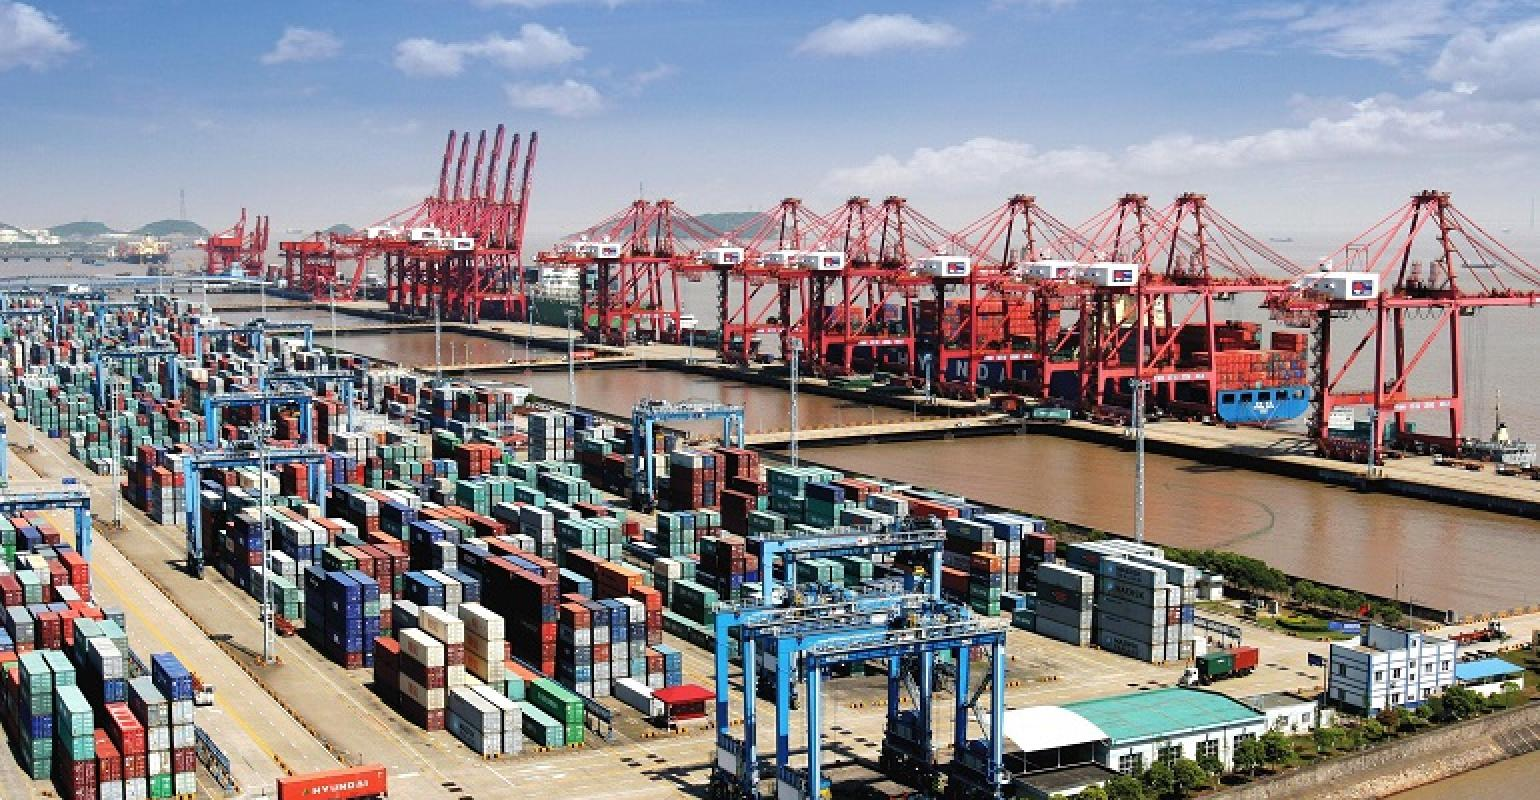 260 million TEU – China's container throughput at ports in 2020